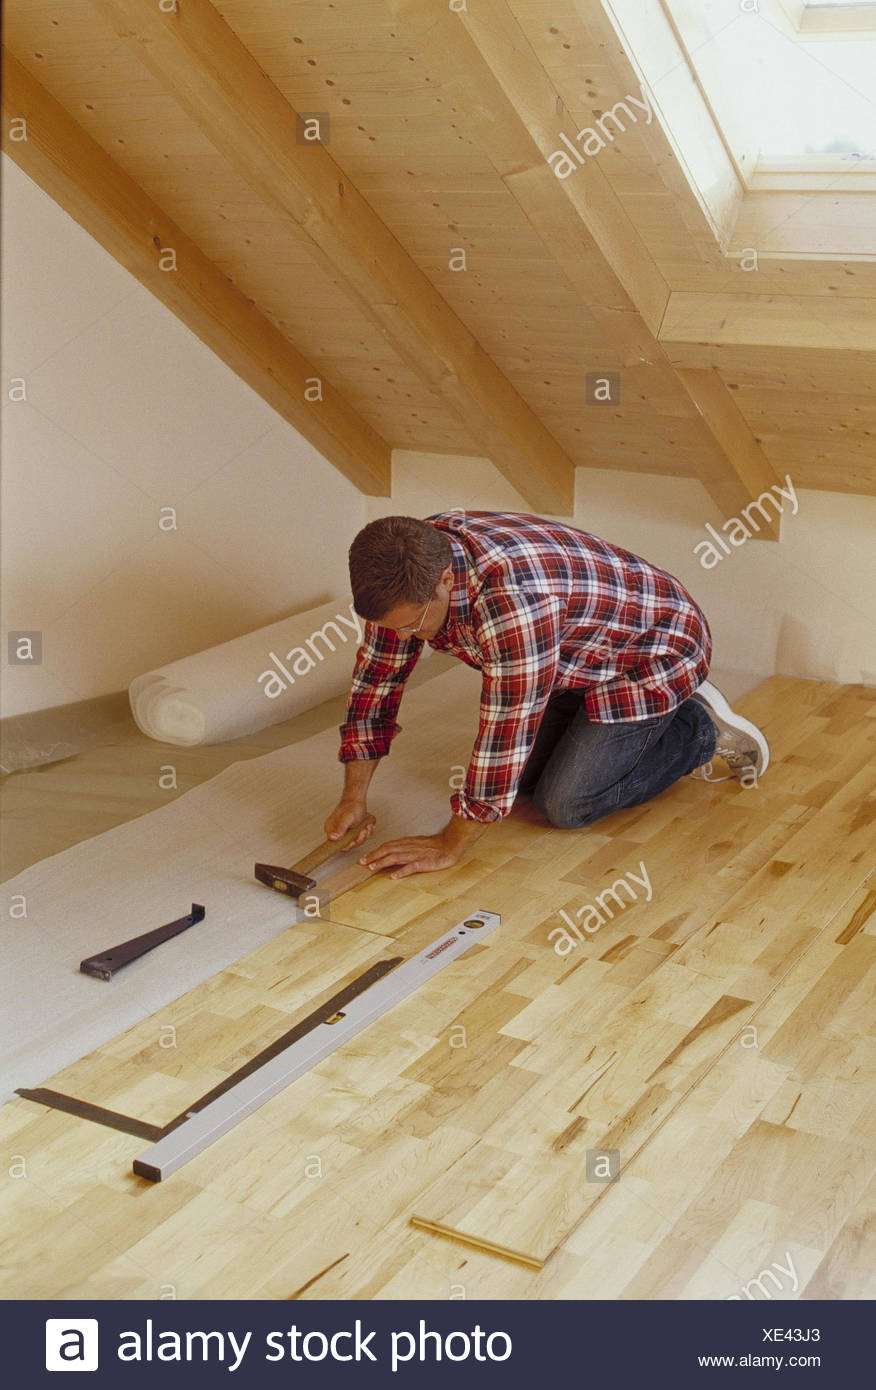 Renovation embarrassed stock photos renovation embarrassed stock living space craftsman stalls embarrassed do it yourself do solutioingenieria Gallery